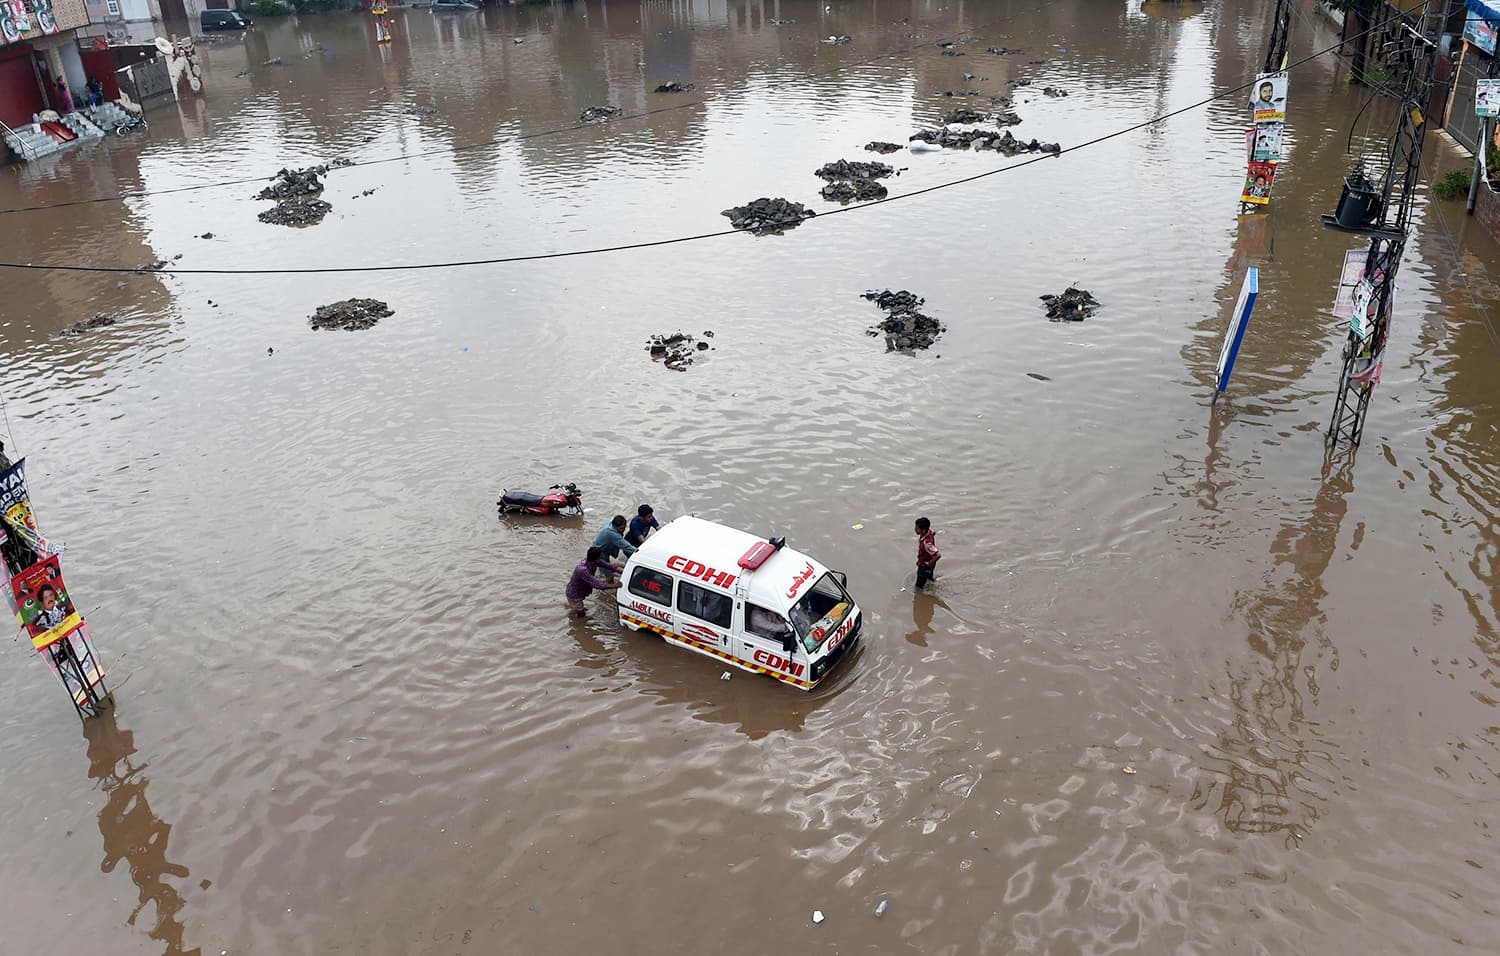 Men push an ambulance through a flooded square in Lahore. —AFP